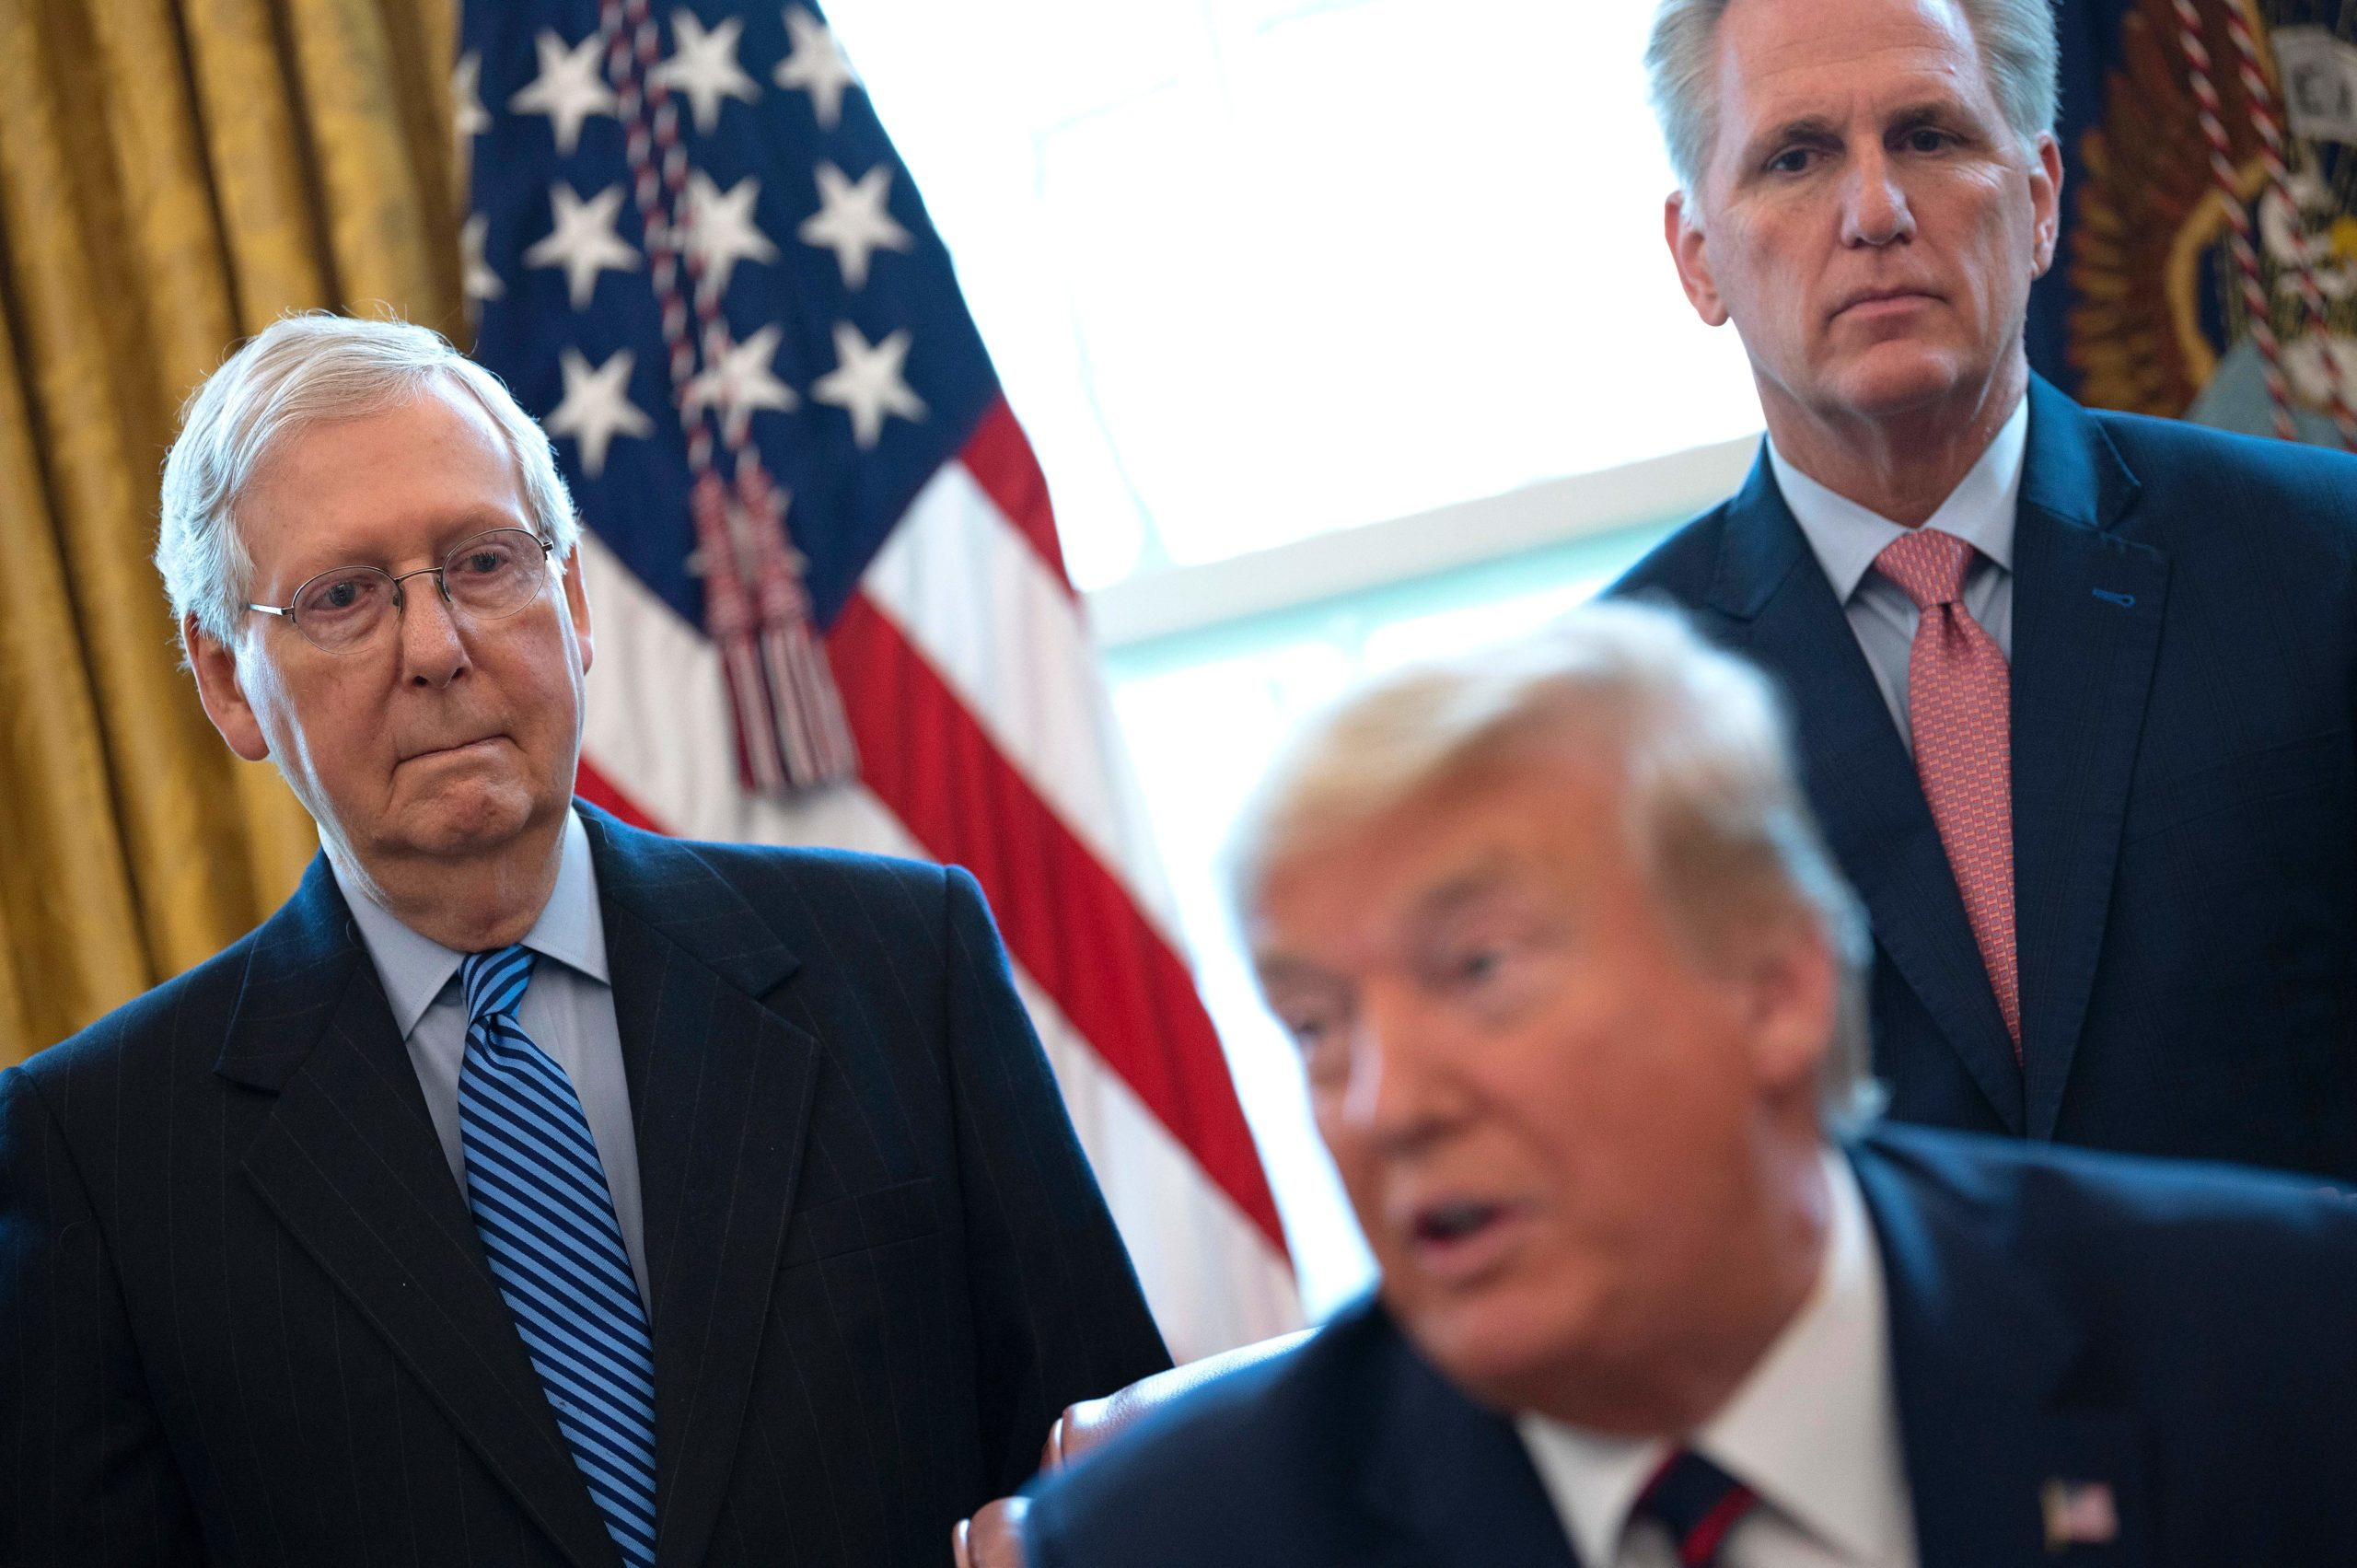 US Senate Majority Leader Mitch McConnell (L) and House Minority Leader Kevin McCarthy (R) look on as US President Donald Trump speaks before signing the CARES act, a $2 trillion rescue package to provide economic relief amid the coronavirus outbreak, at the Oval Office of the White House on March 27, 2020. - After clearing the Senate earlier this week, and as the United States became the new global epicenter of the pandemic with 92,000 confirmed cases of infection, Republicans and Democrats united to greenlight the nation's largest-ever economic relief plan. (Photo by JIM WATSON/AFP via Getty Images)